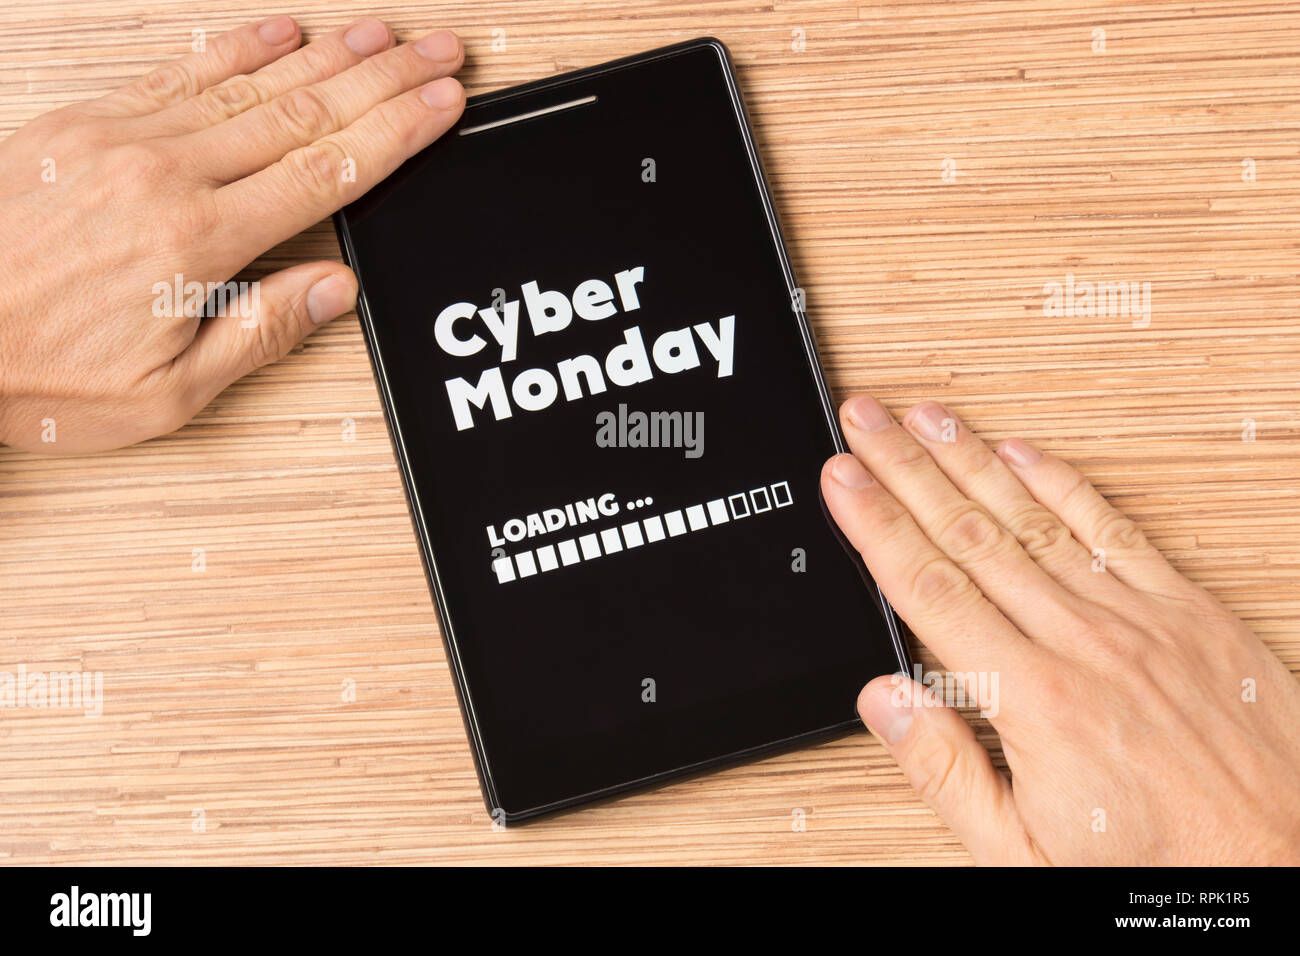 Cyber Monday loading - Stock Image